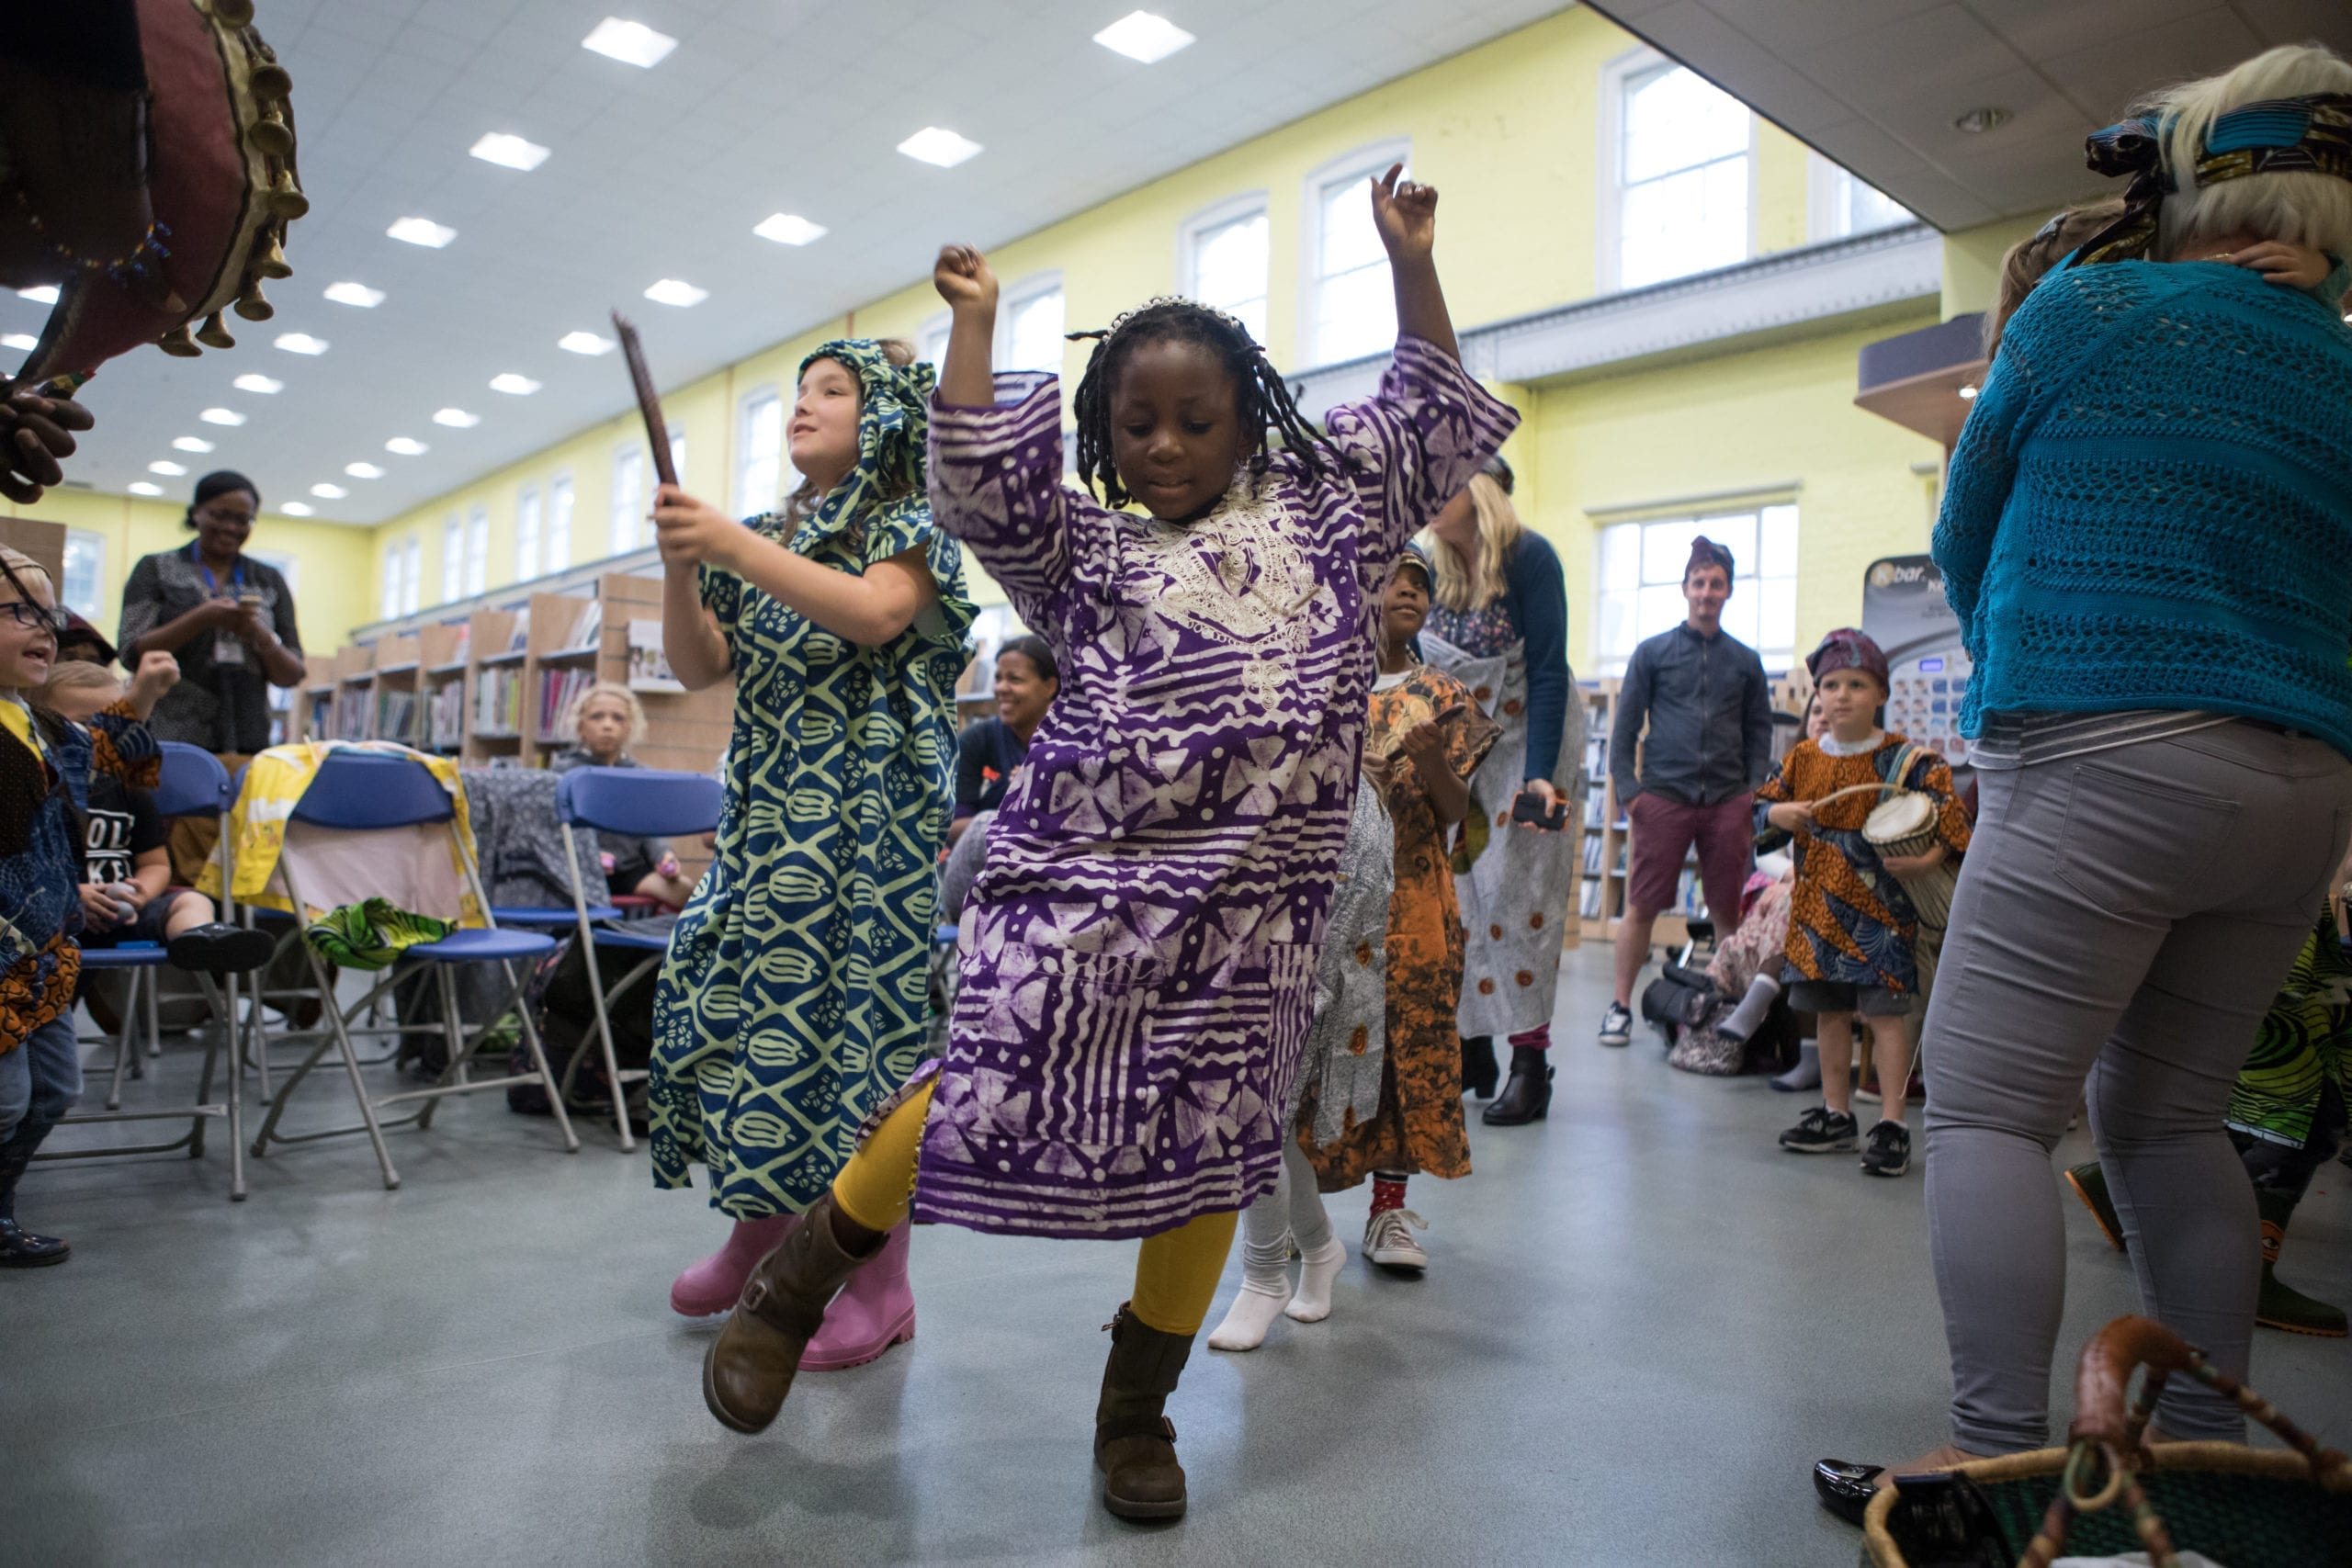 Young children dancing and playing percussion instruments